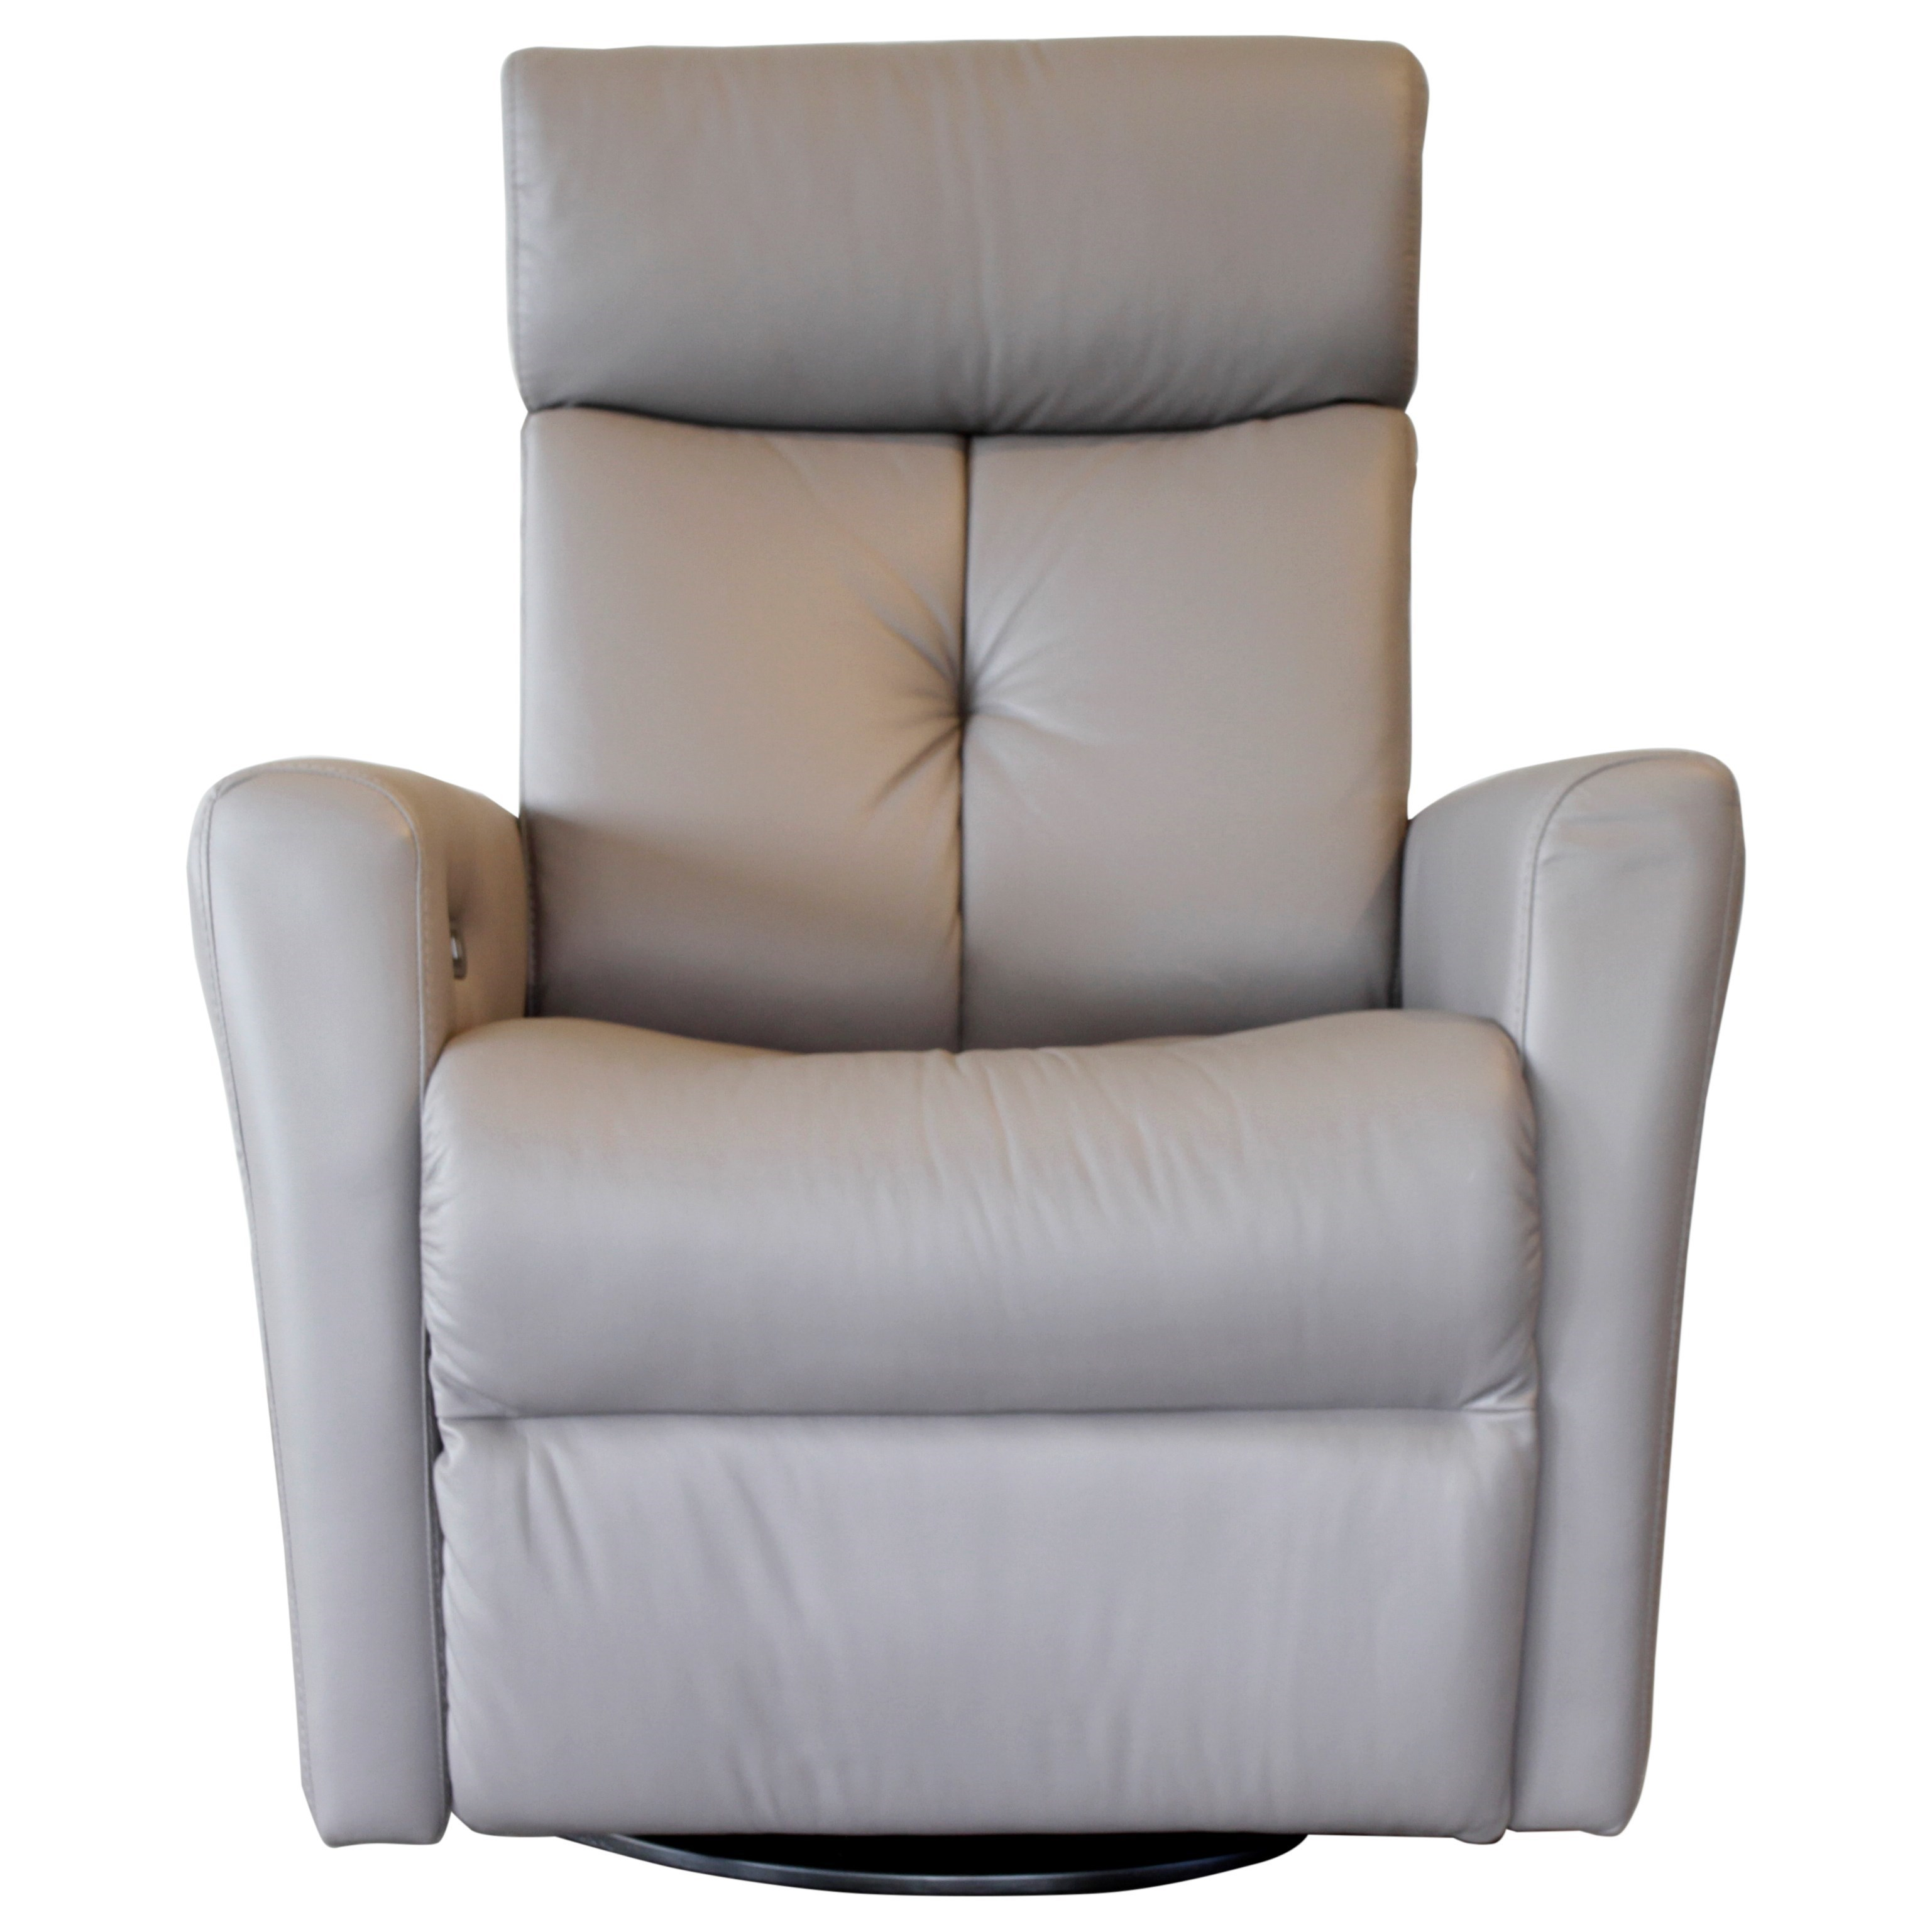 Palliser Prodigy Contemporary Power Swivel Glider Recliner With Power Headrest Jordan S Home Furnishings Recliners